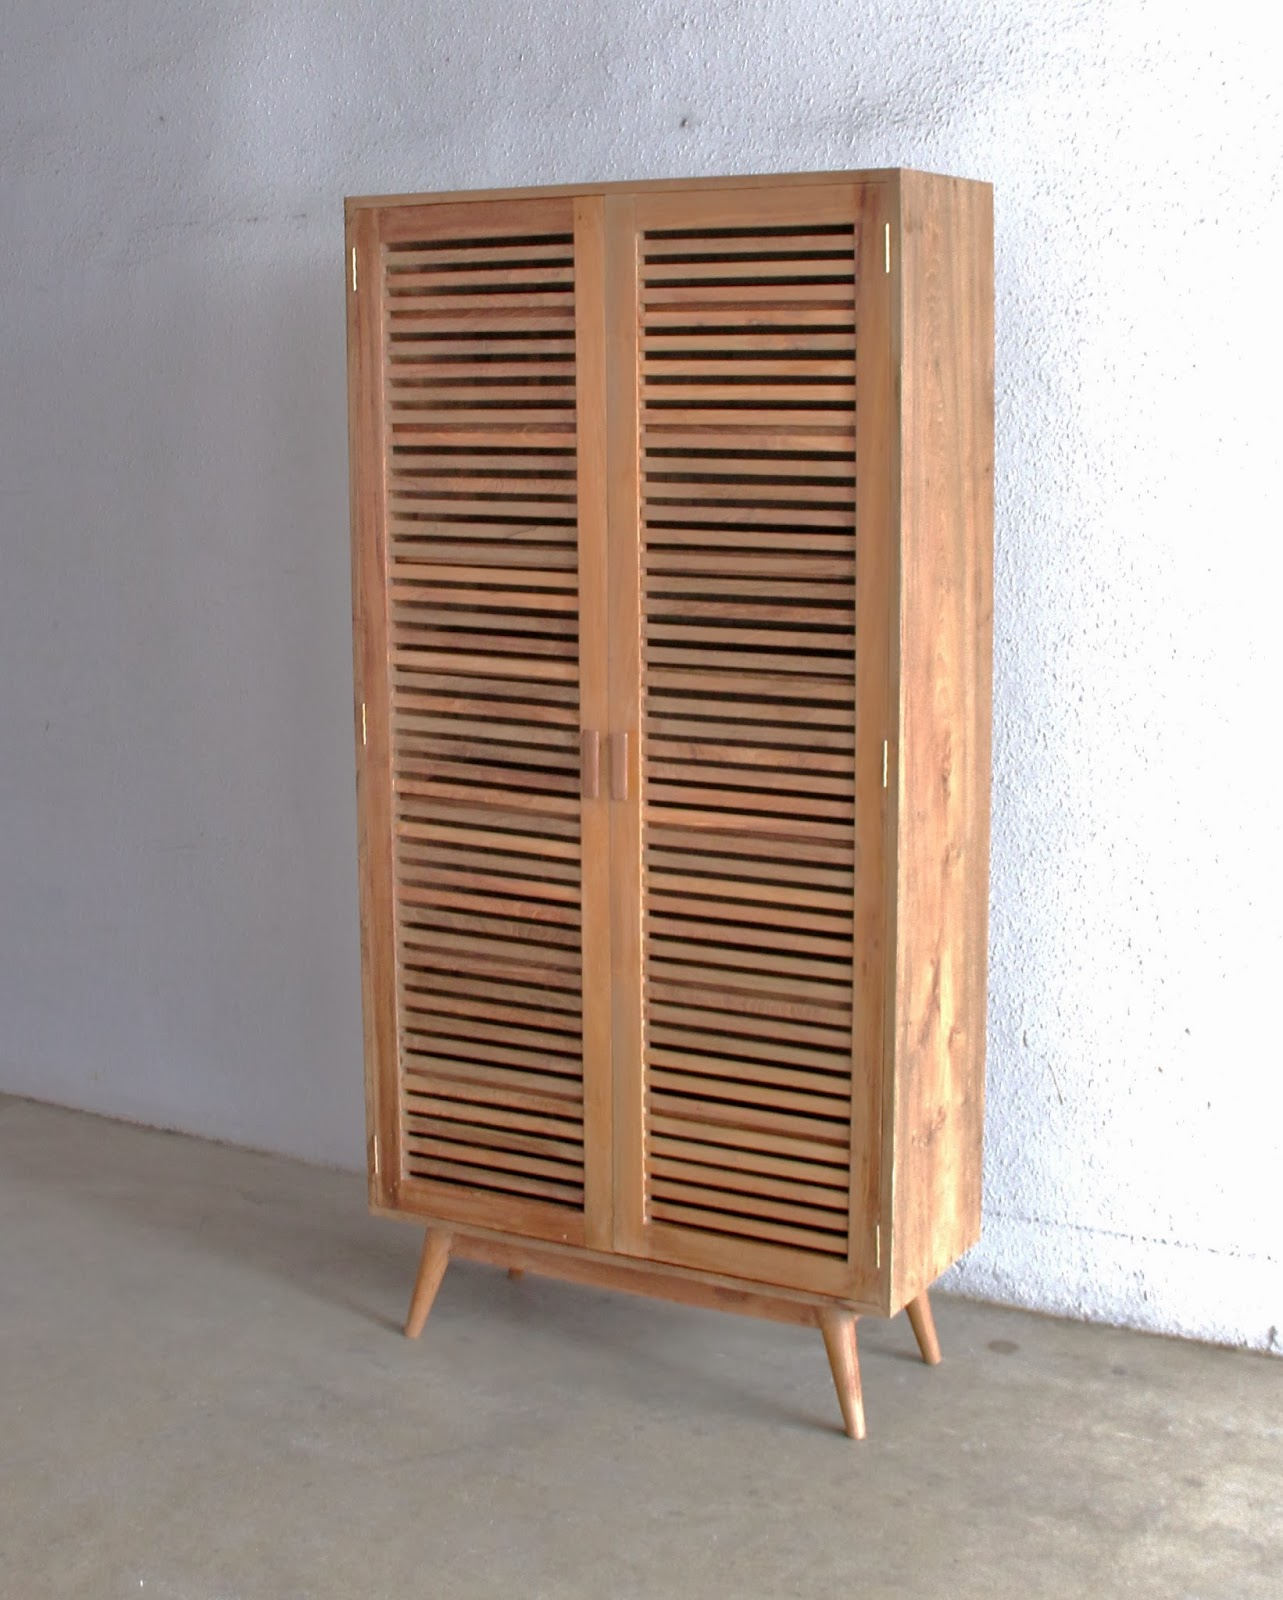 SECOND CHARM FURNITURE - MID CENTURY MODERN INFLUENCE | Second Charm